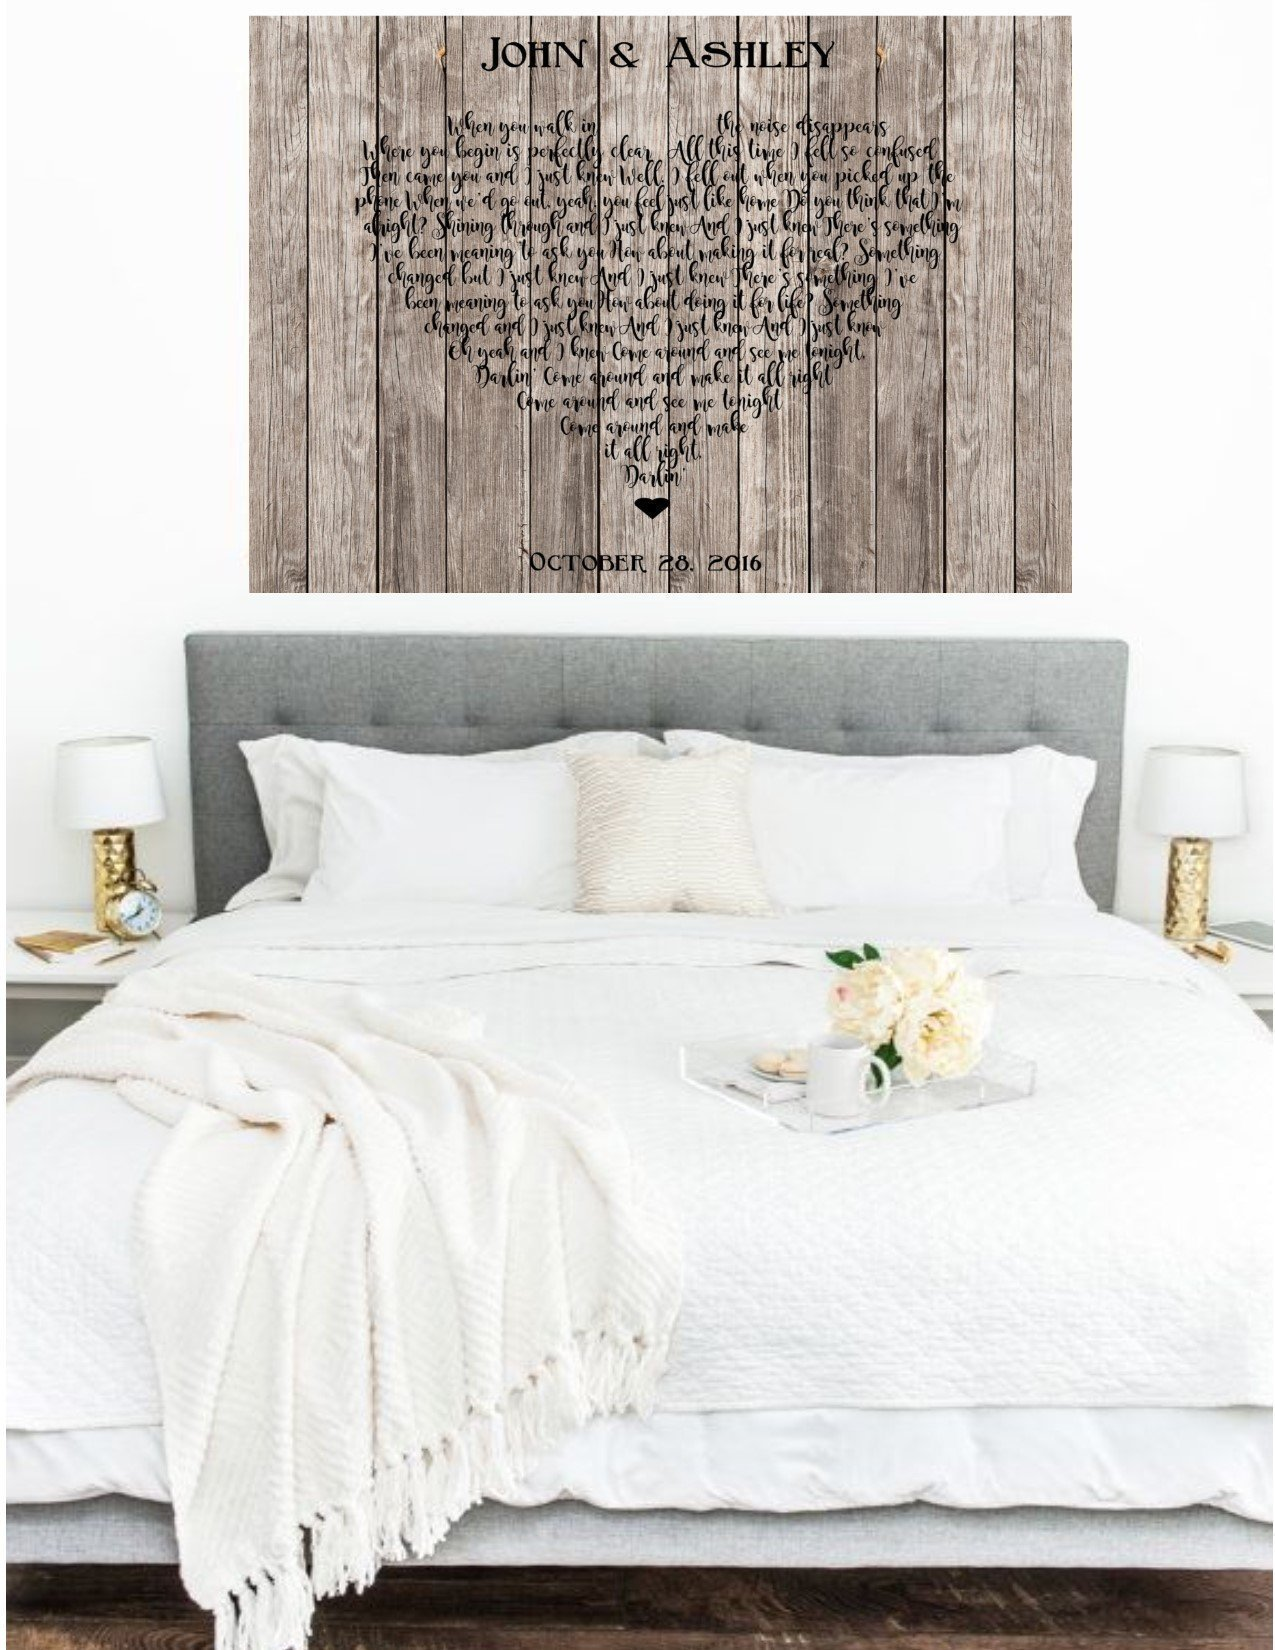 Song Lyrics in a Heart, Personalized Rustic Canvas, First Dance Song, Wedding Song On Canvas, First Dance Song Lyrics, Anniversary Gift